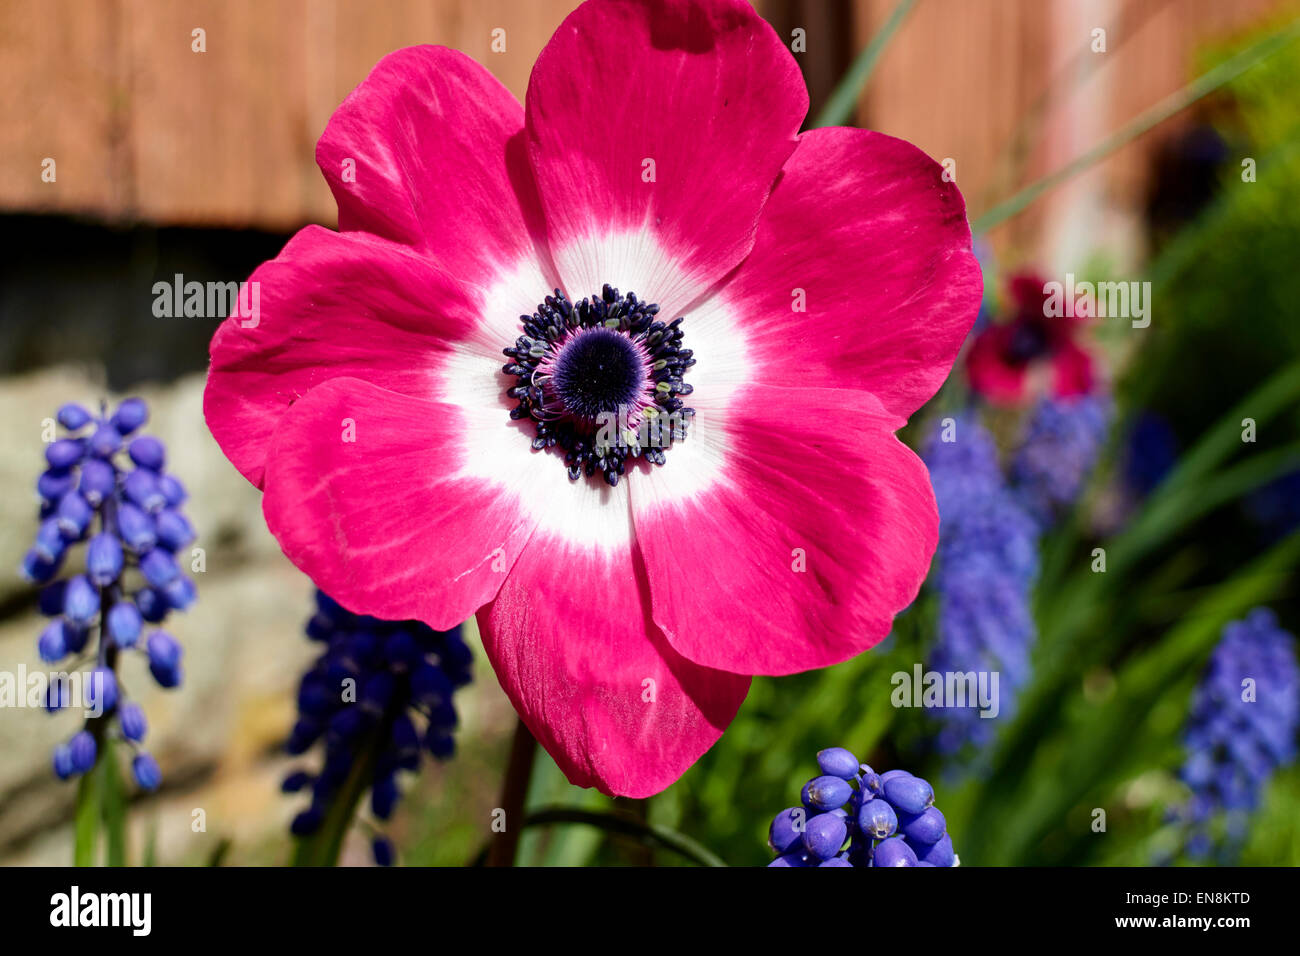 anemone mona lisa coronaria pink flower in a garden in the uk - Stock Image